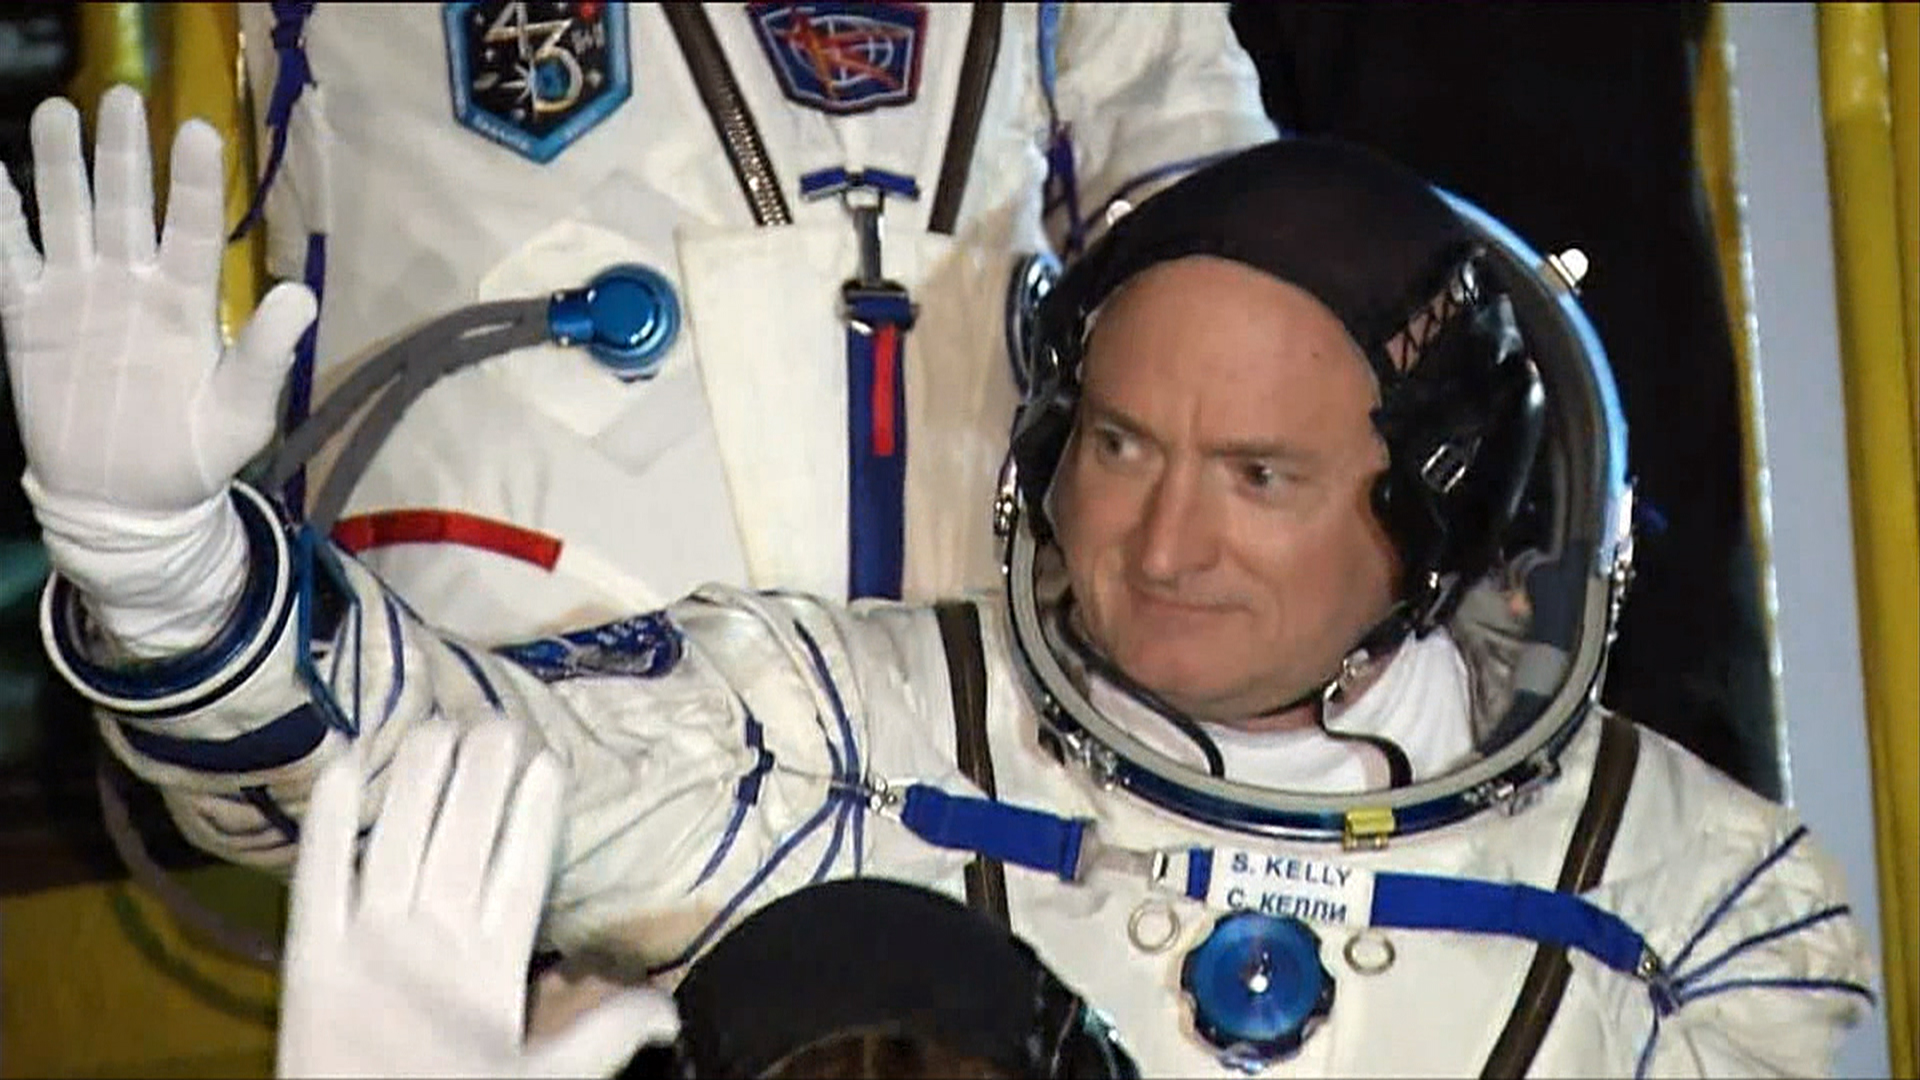 mike kelly astronaut - photo #9